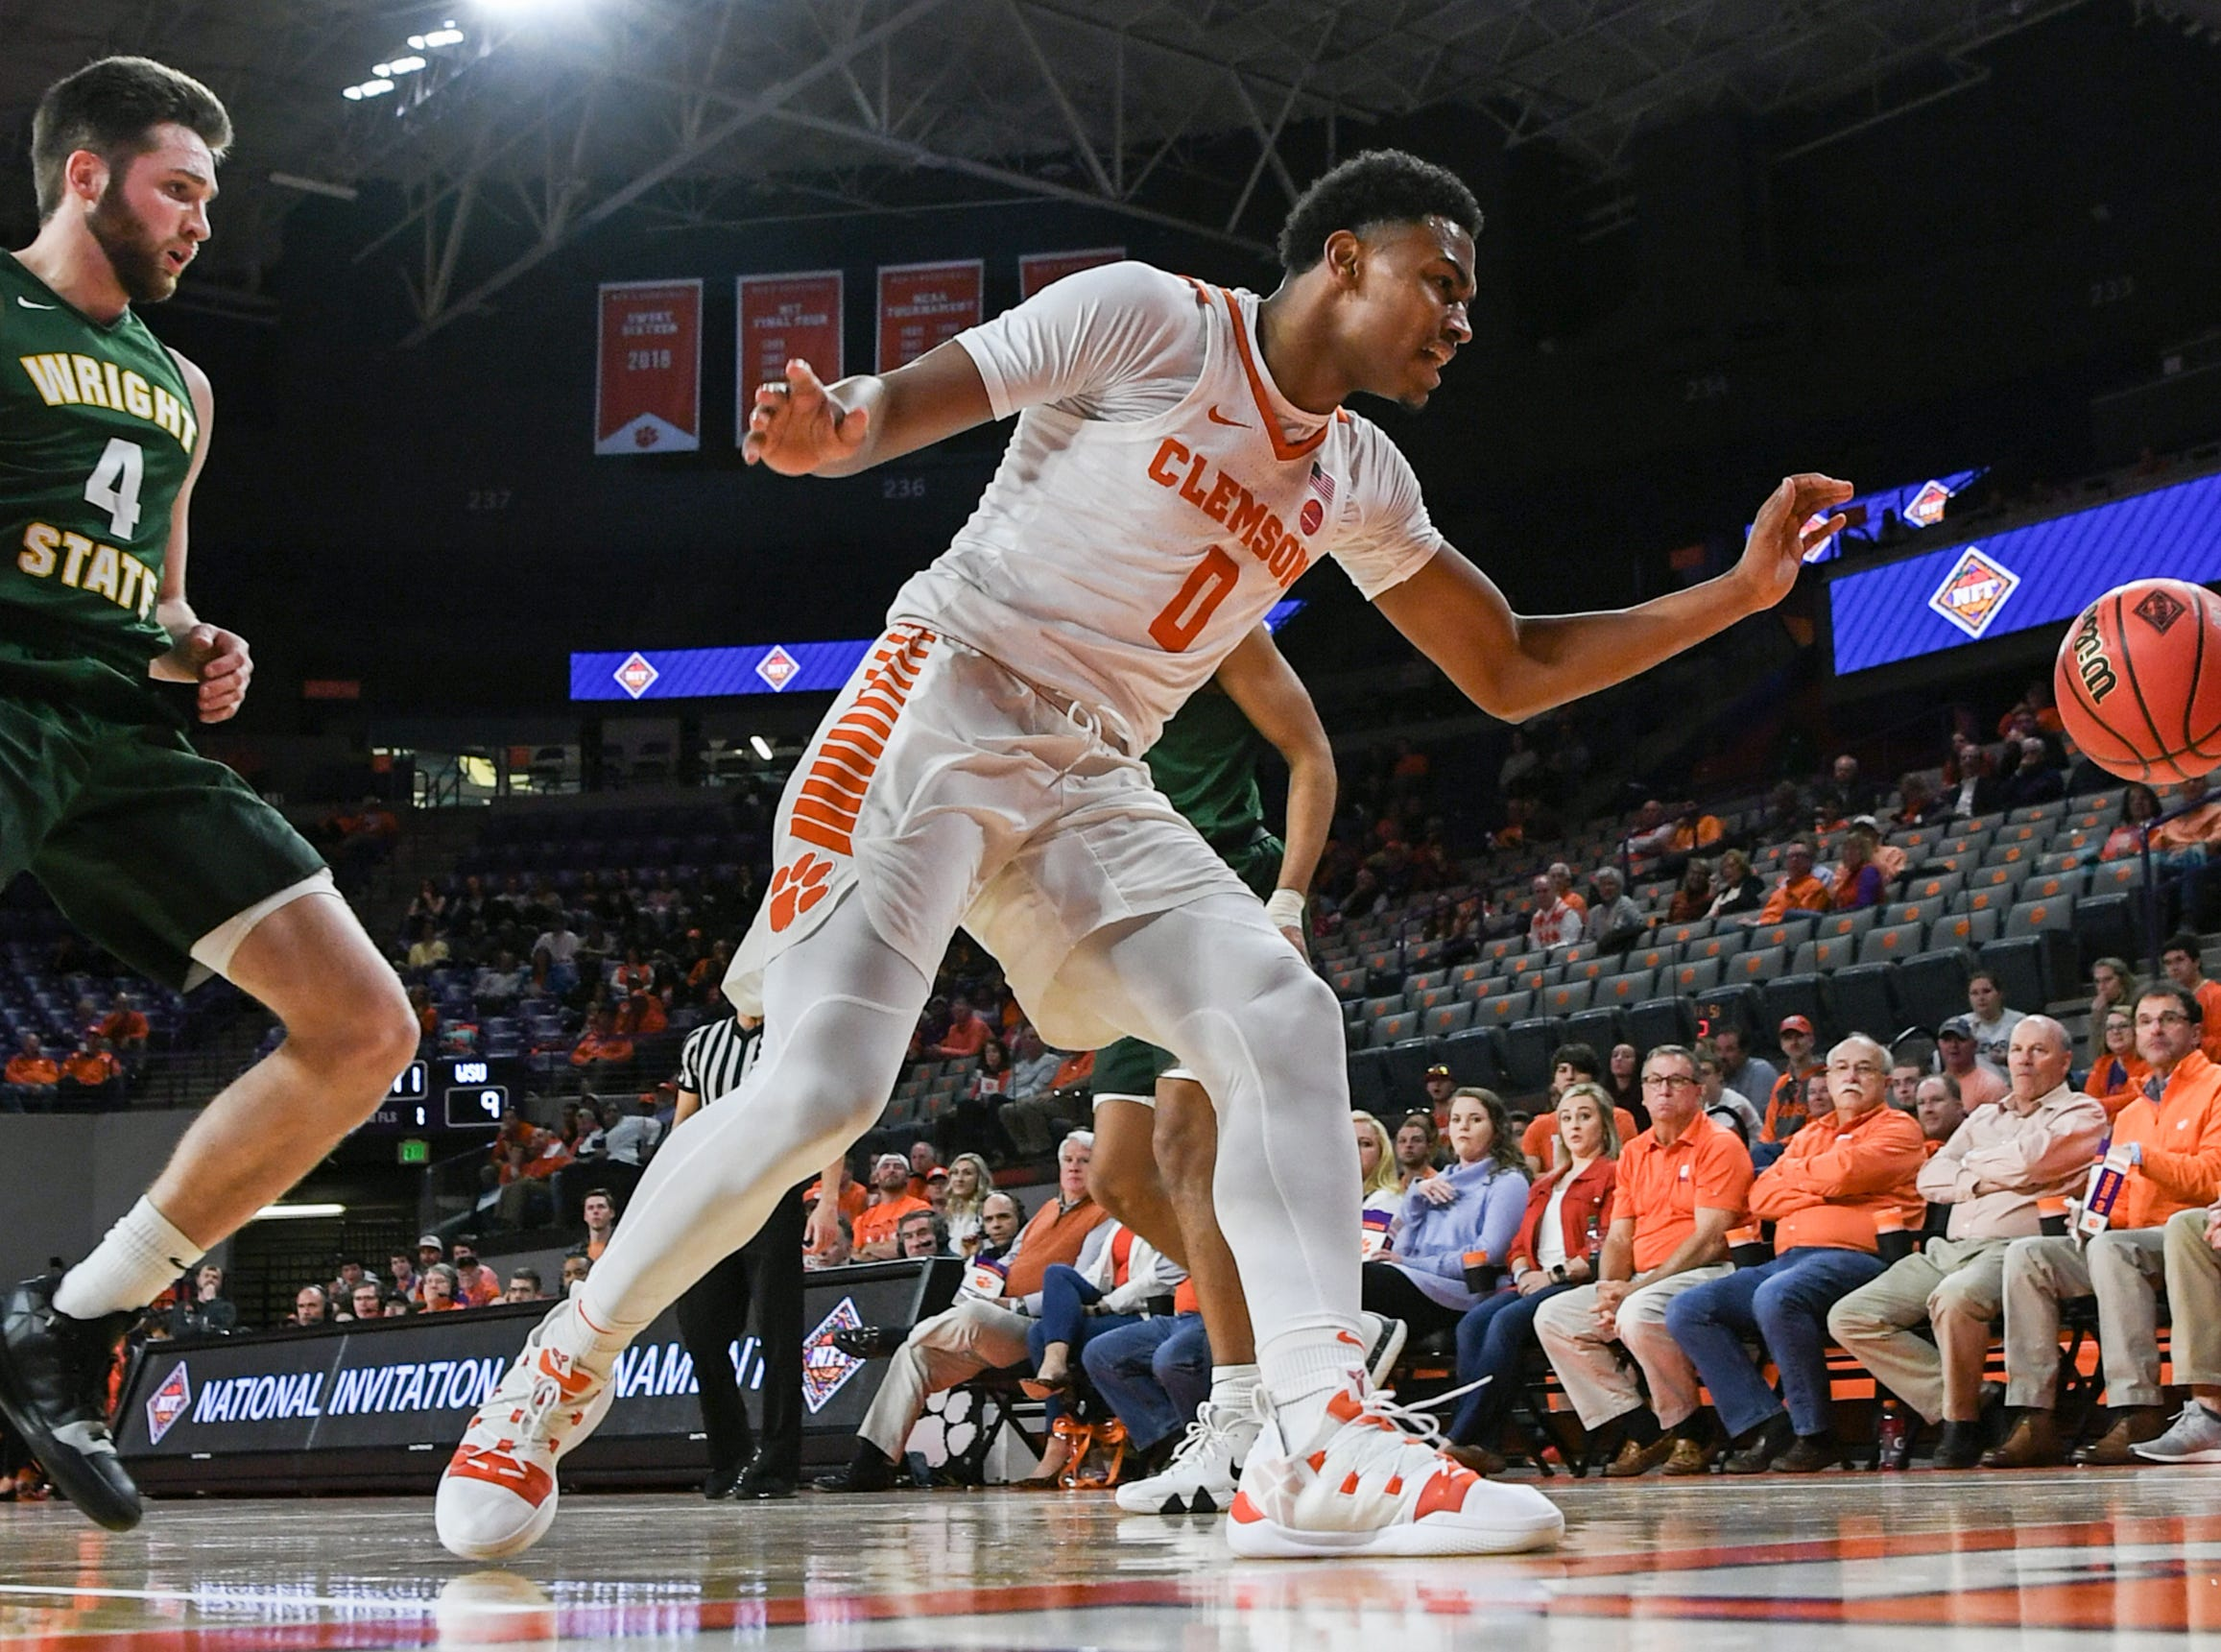 Clemson center Clyde Trapp (0) reaches for a loose ball near Wright State guard Alan Vest(4) during the first half of the NIT at Littlejohn Coliseum in Clemson Tuesday, March 19, 2019.